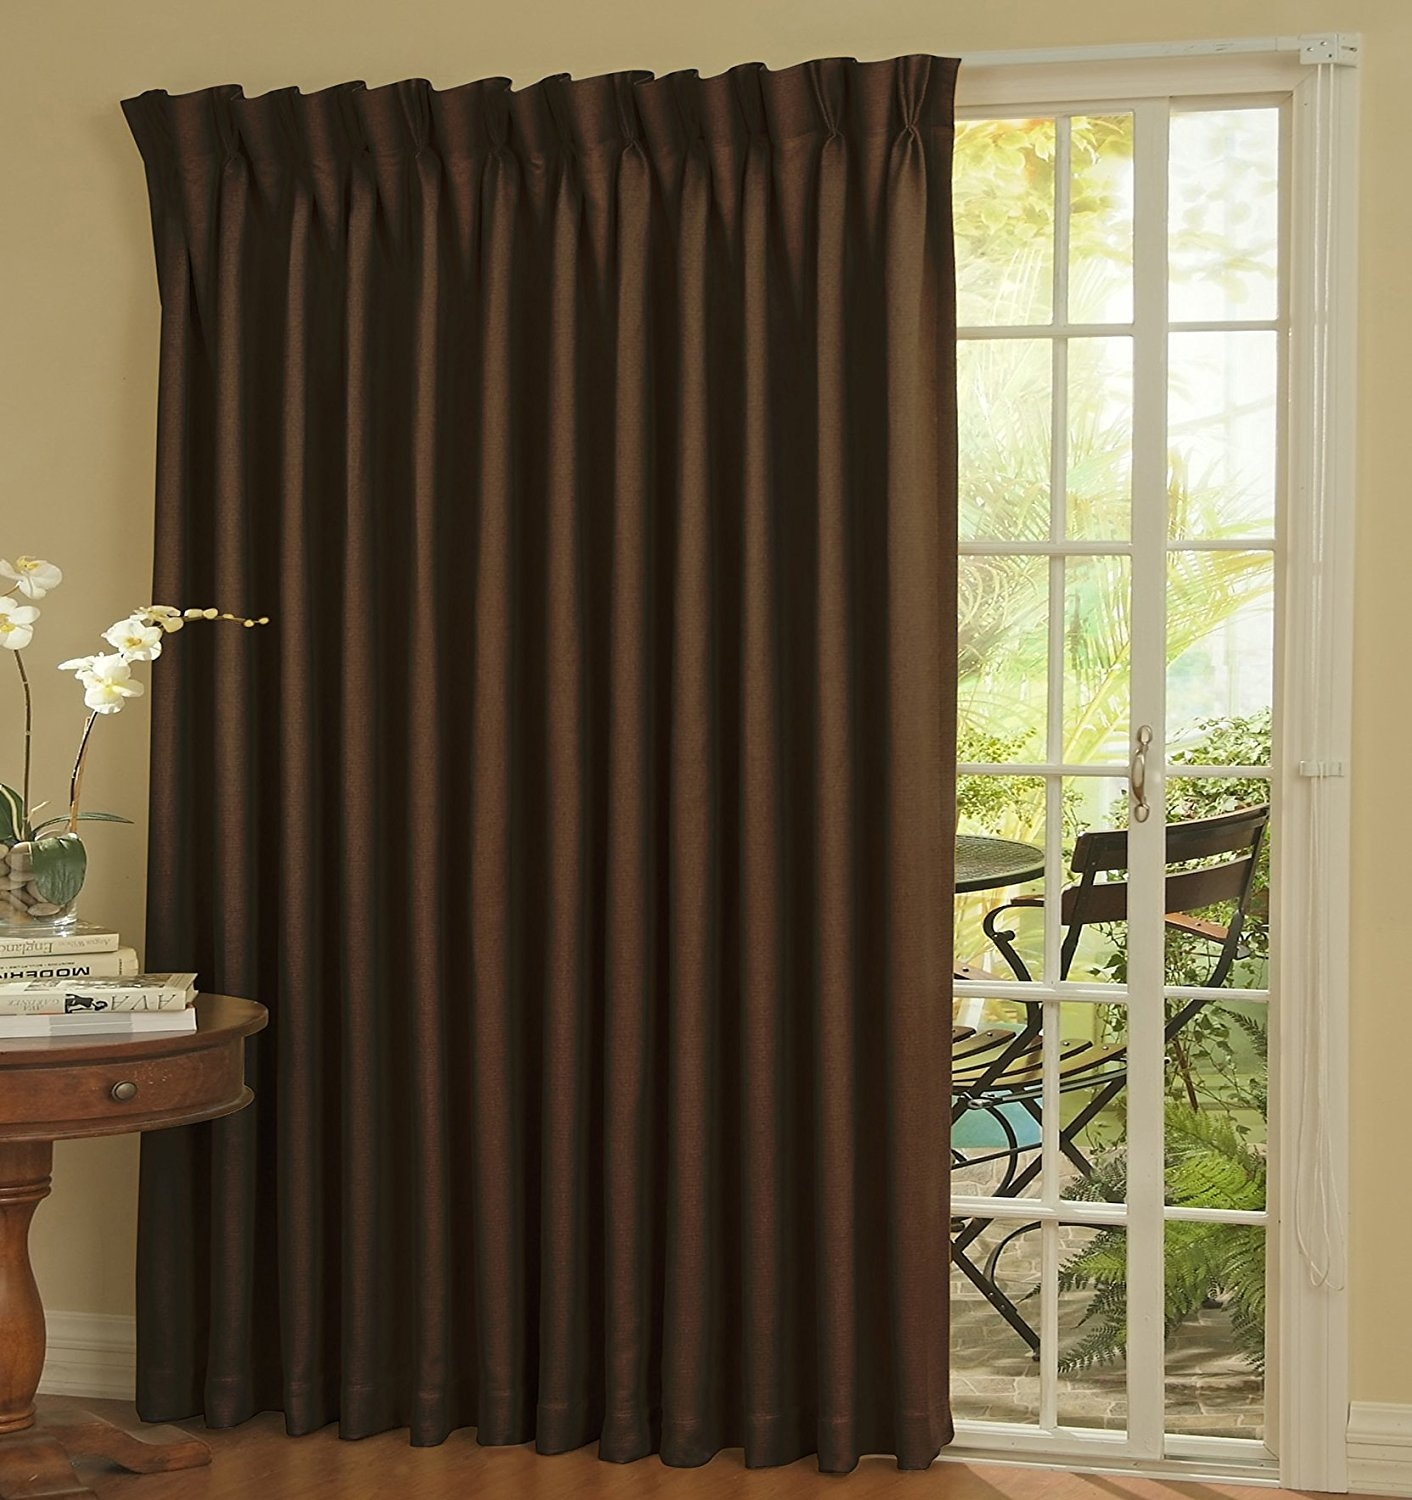 Amazon Eclipse Thermal Blackout Patio Door Curtain Panel 100 Intended For Thermal Door Curtains (Image 1 of 15)